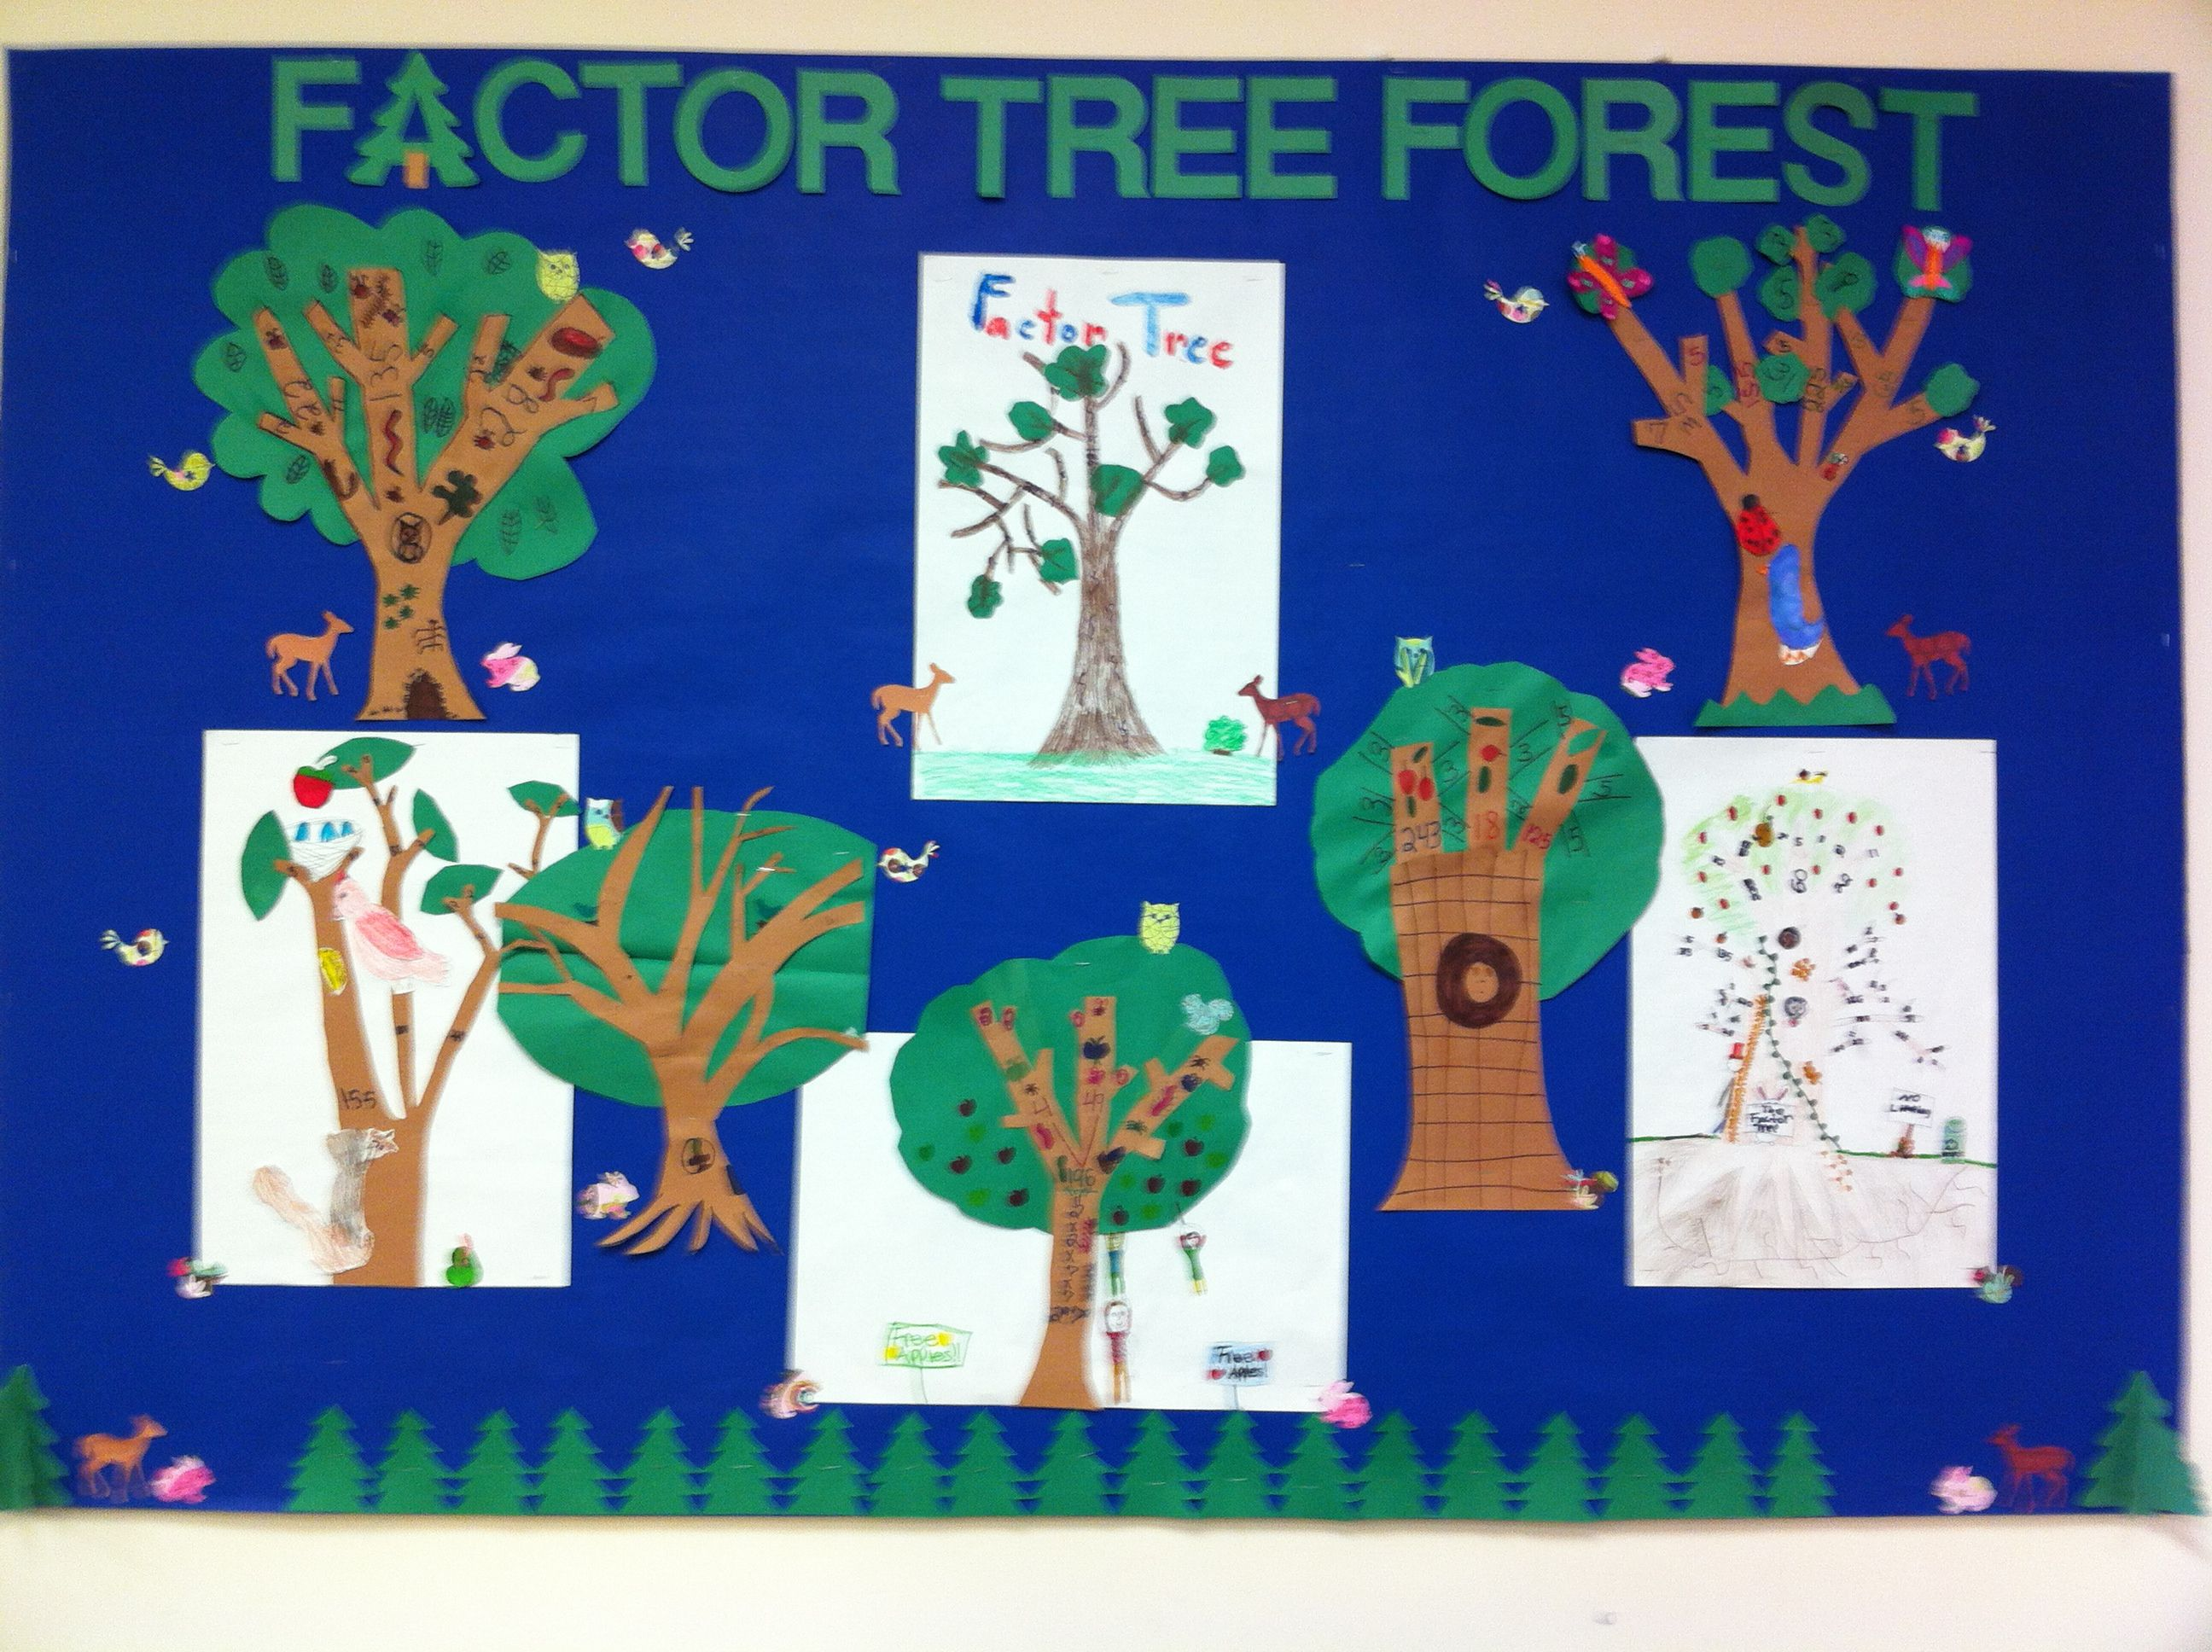 Factor Tree Forest